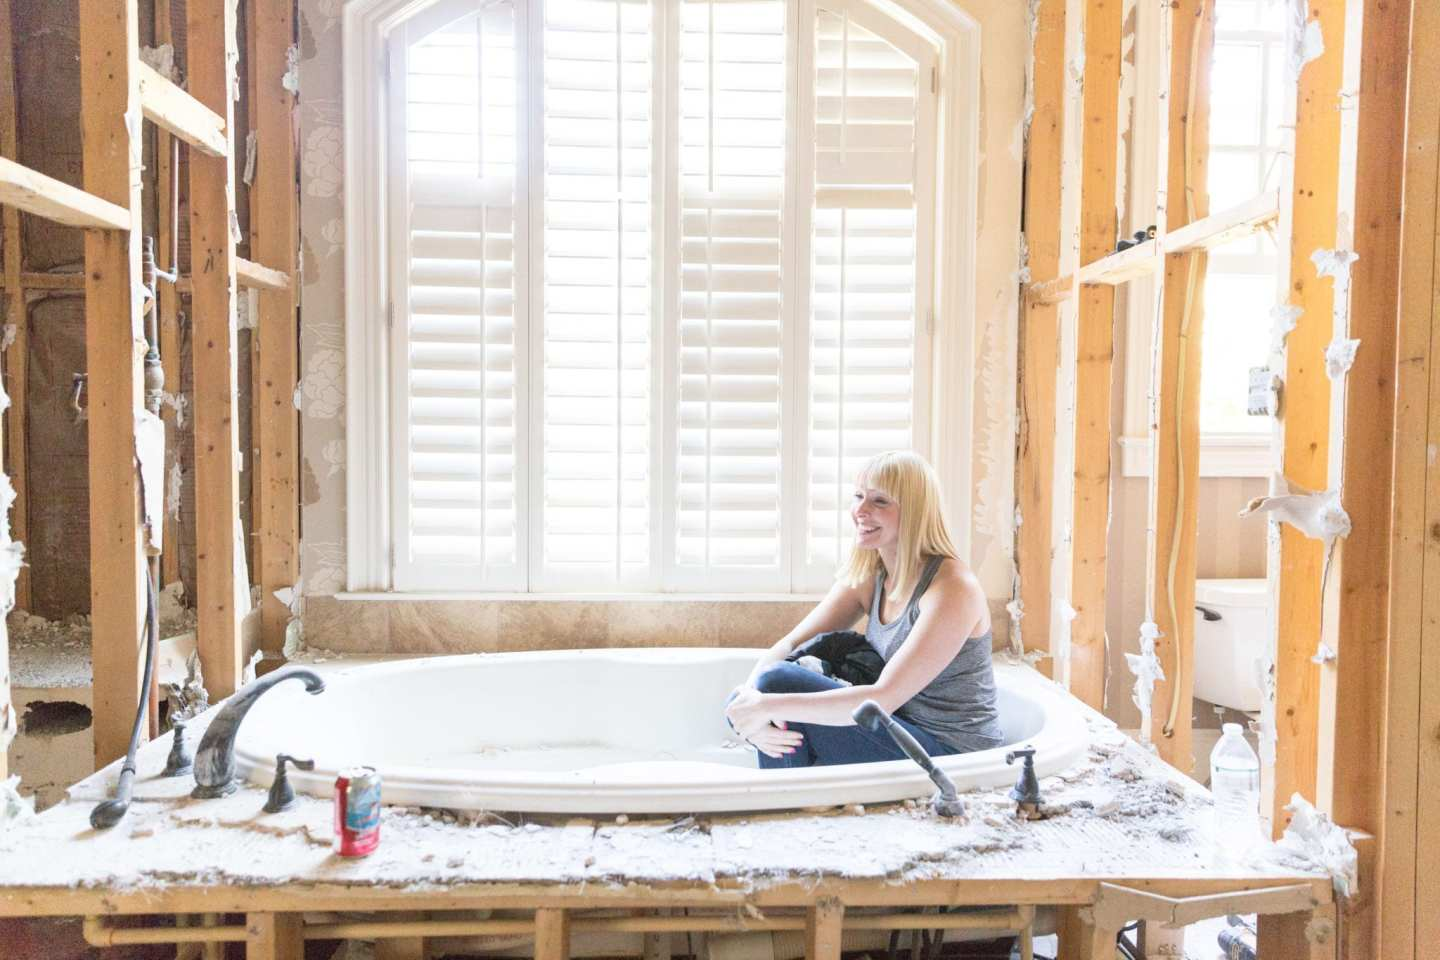 How-to-renovate-a-house-3.jpg?fit=1440%2C960&ssl=1